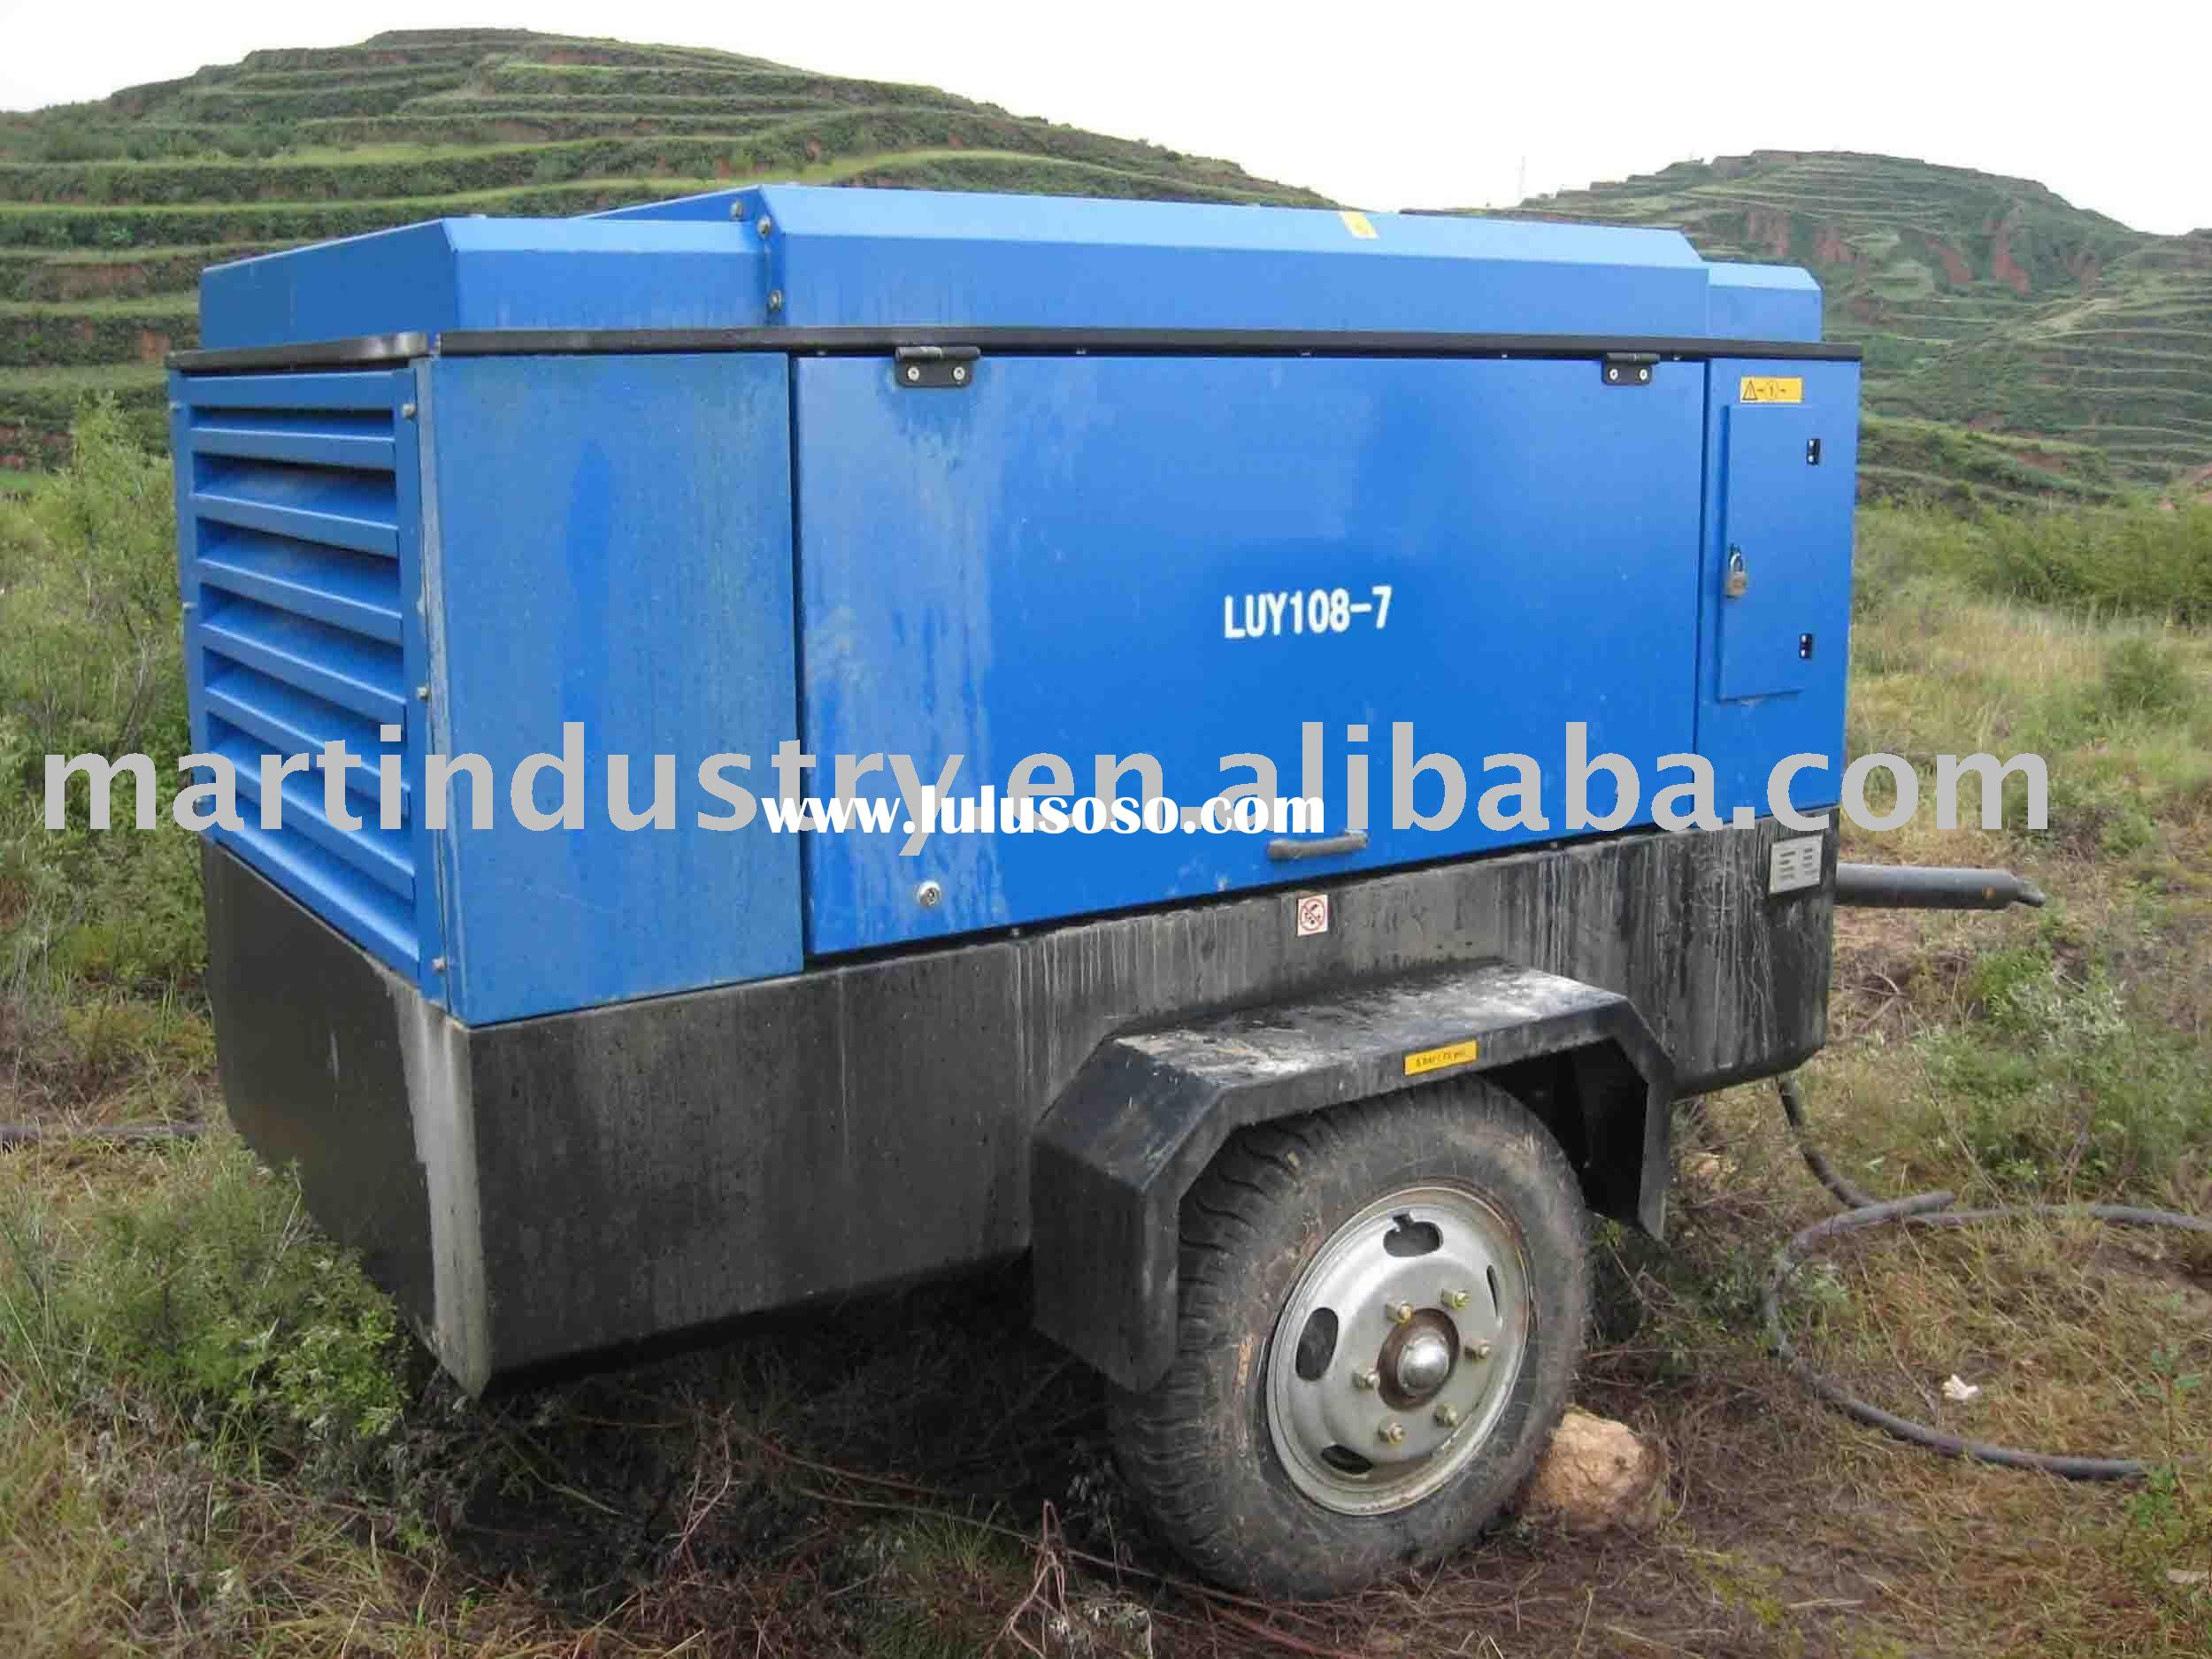 10.8m3/min@7bar portable air compressor(CUMMINS diesel engine)Atlas Copco series